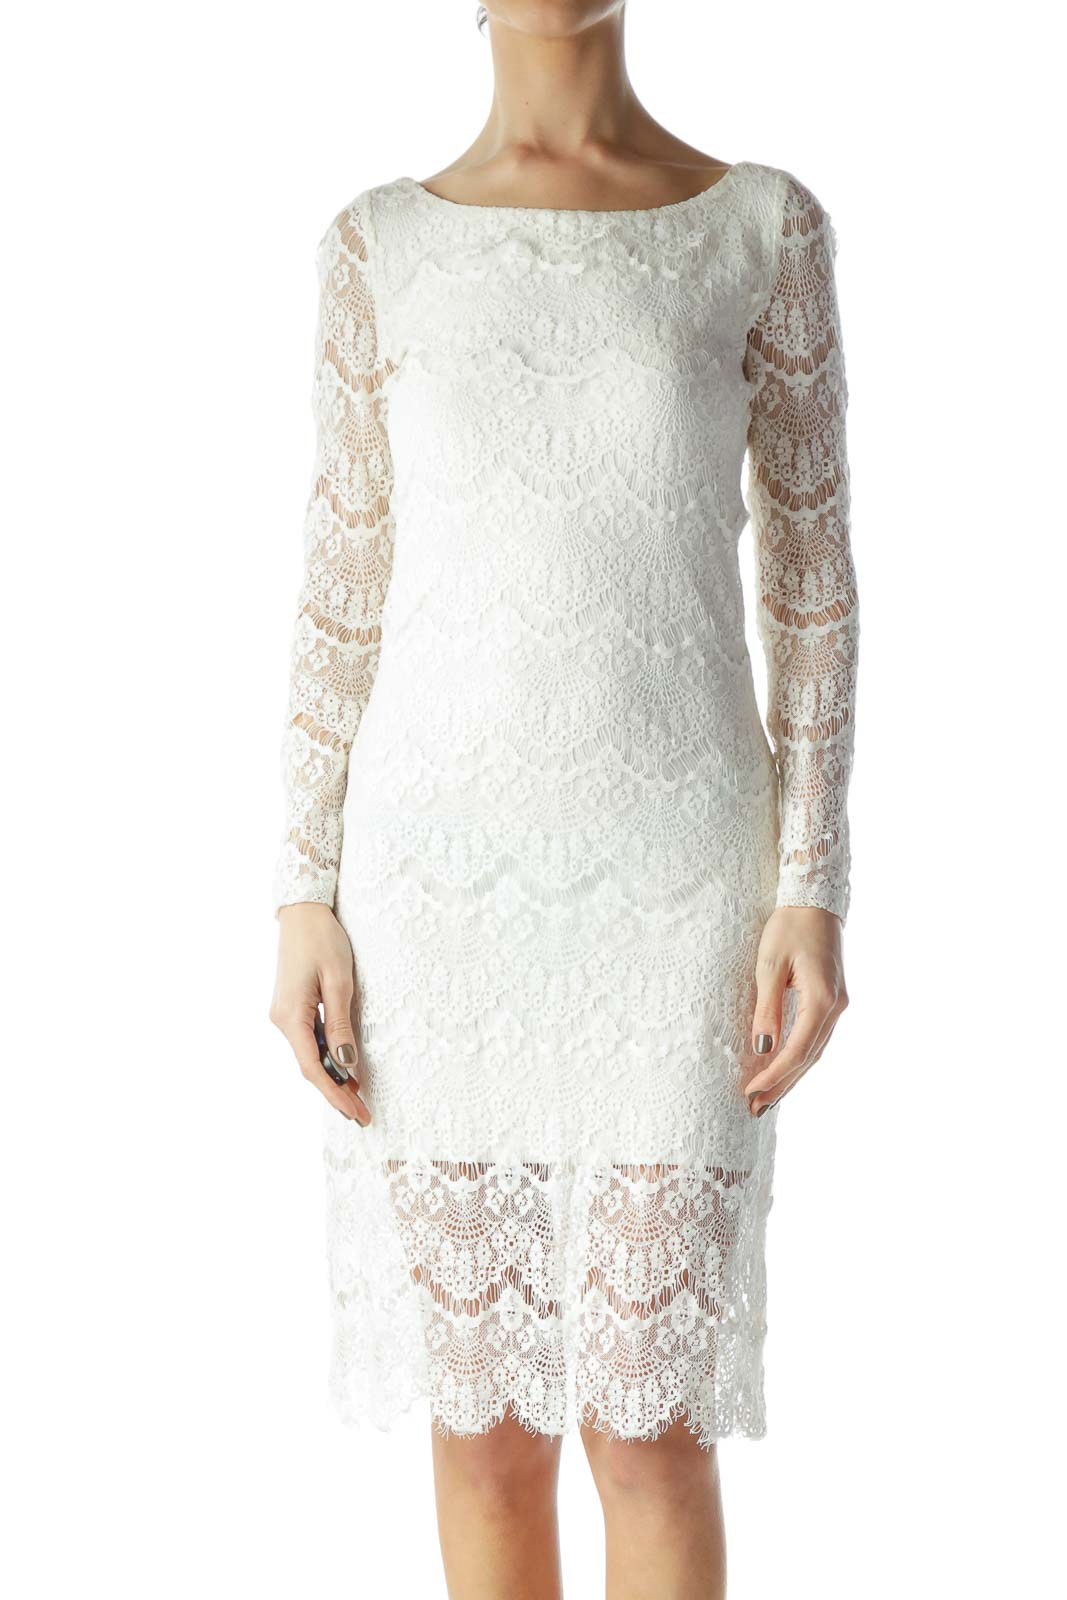 Cream Lace Long Sleeve Knit Dress Front